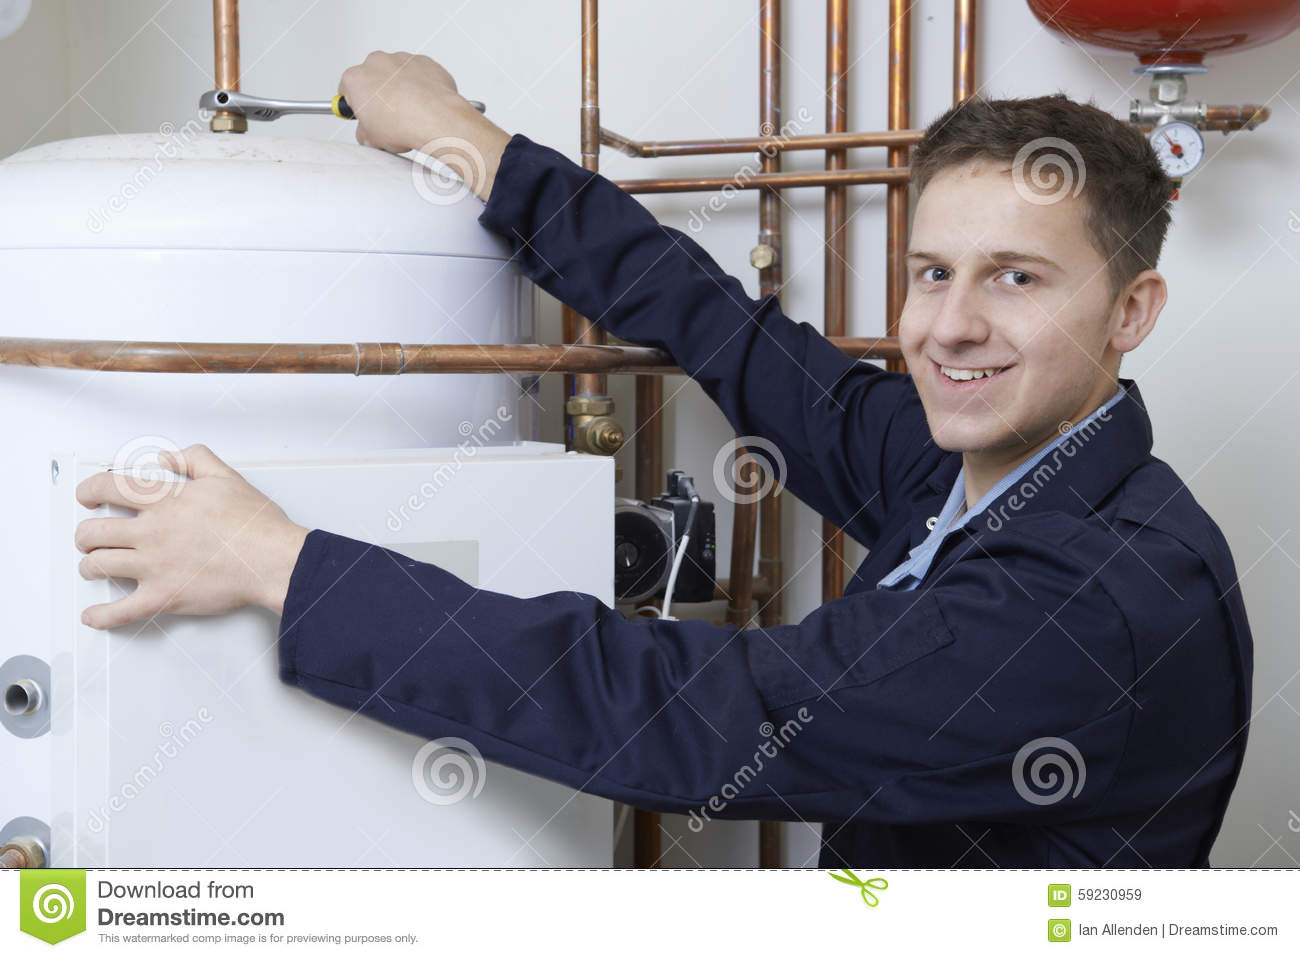 portrait-male-plumber-working-central-heating-boiler-59230959.jpg